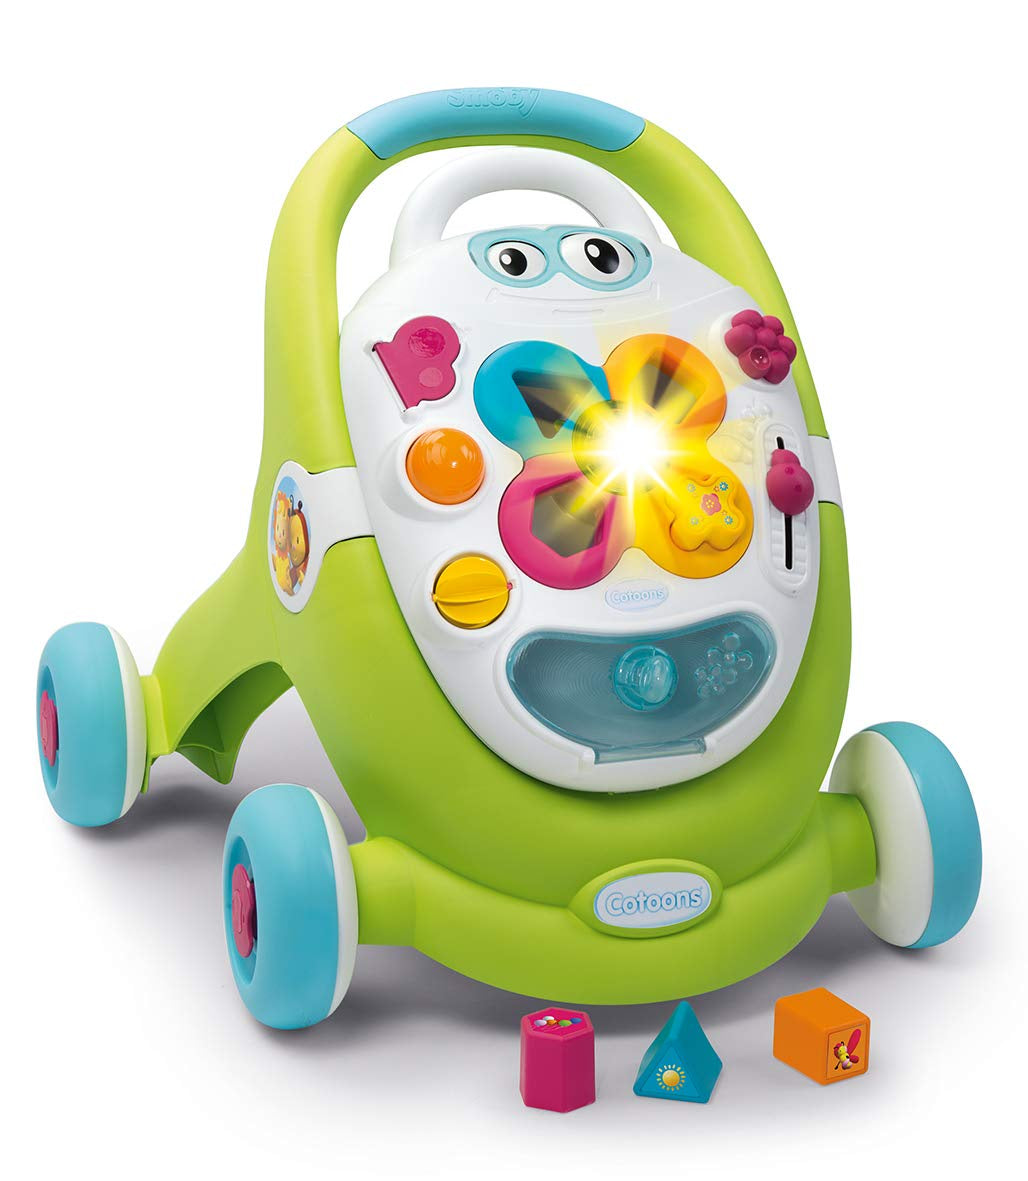 Smoby Cotoons 2 in 1 Baby Walker